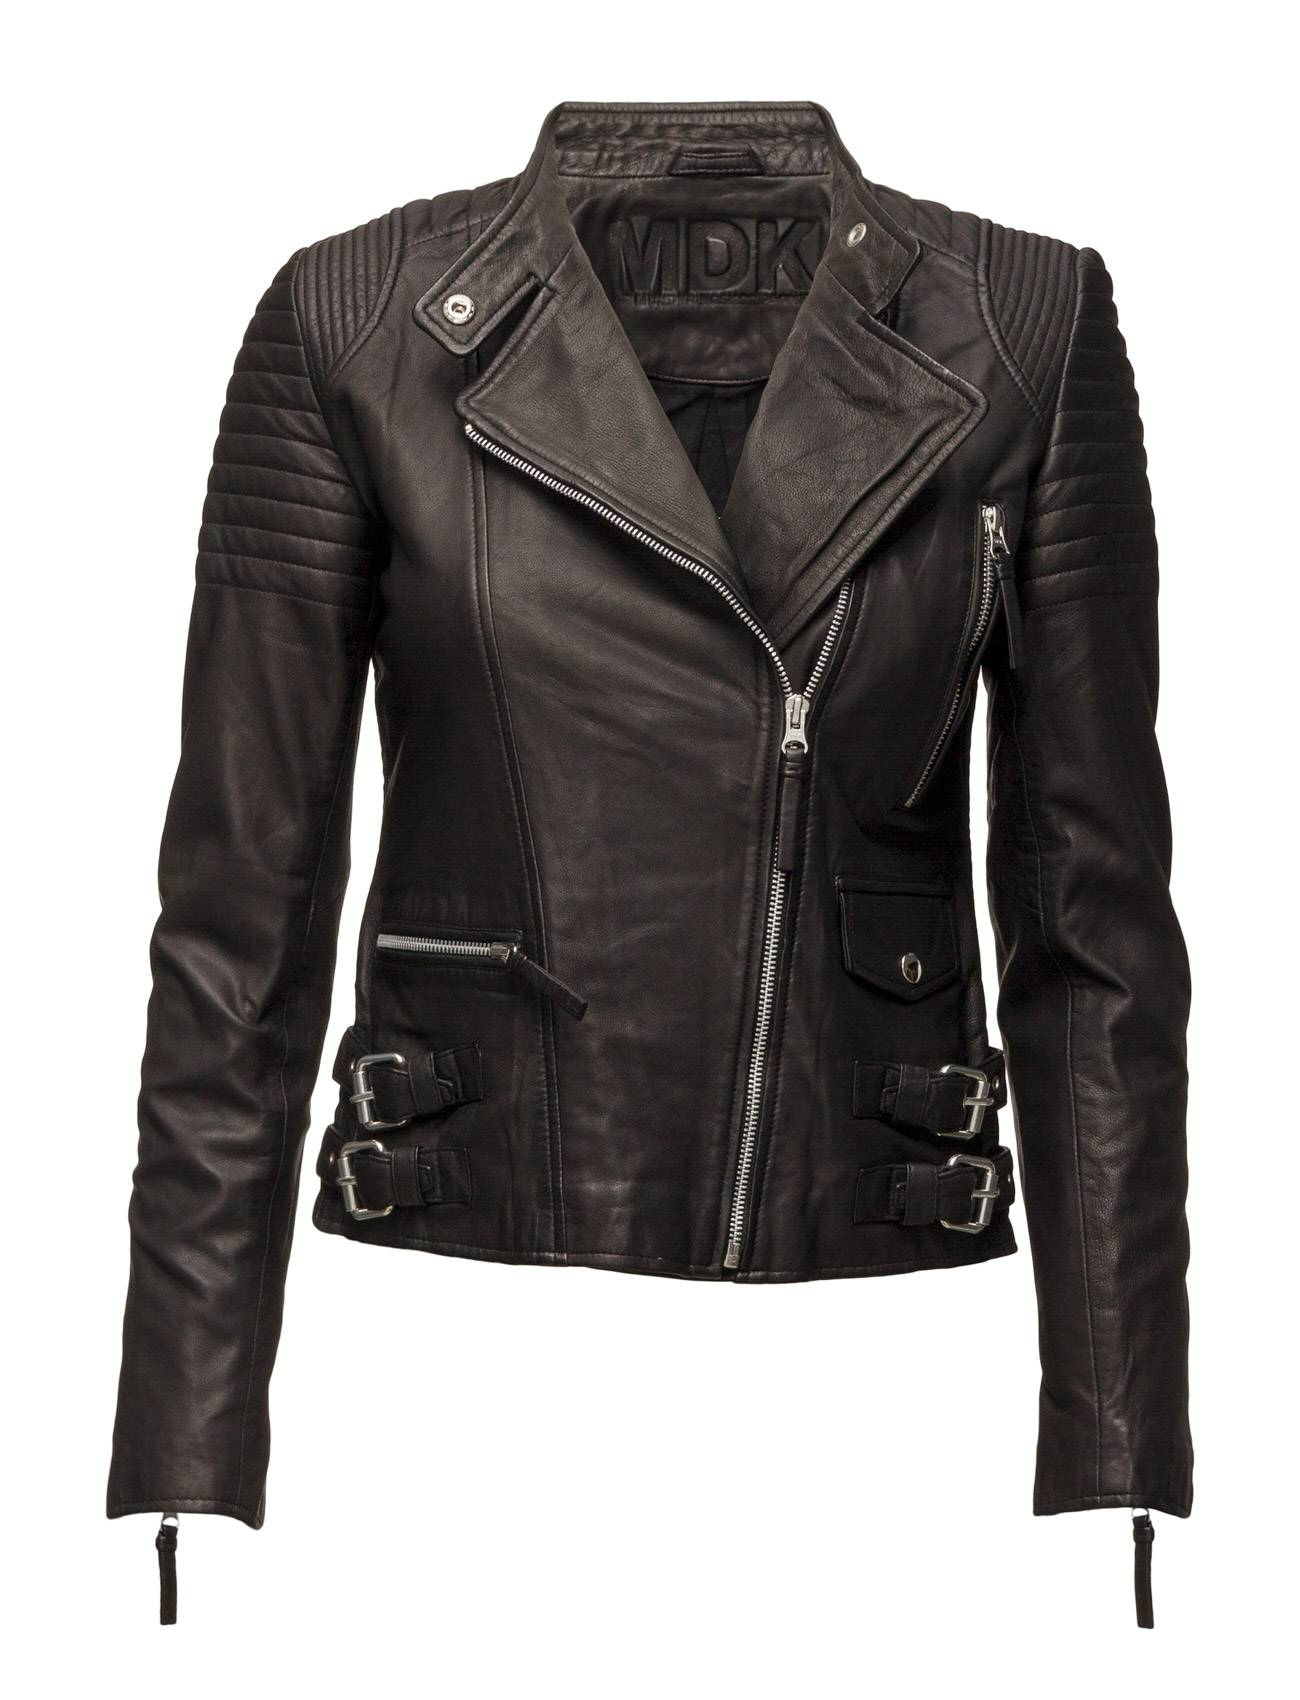 MDK / Munderingskompagniet City Biker Leather Jacket